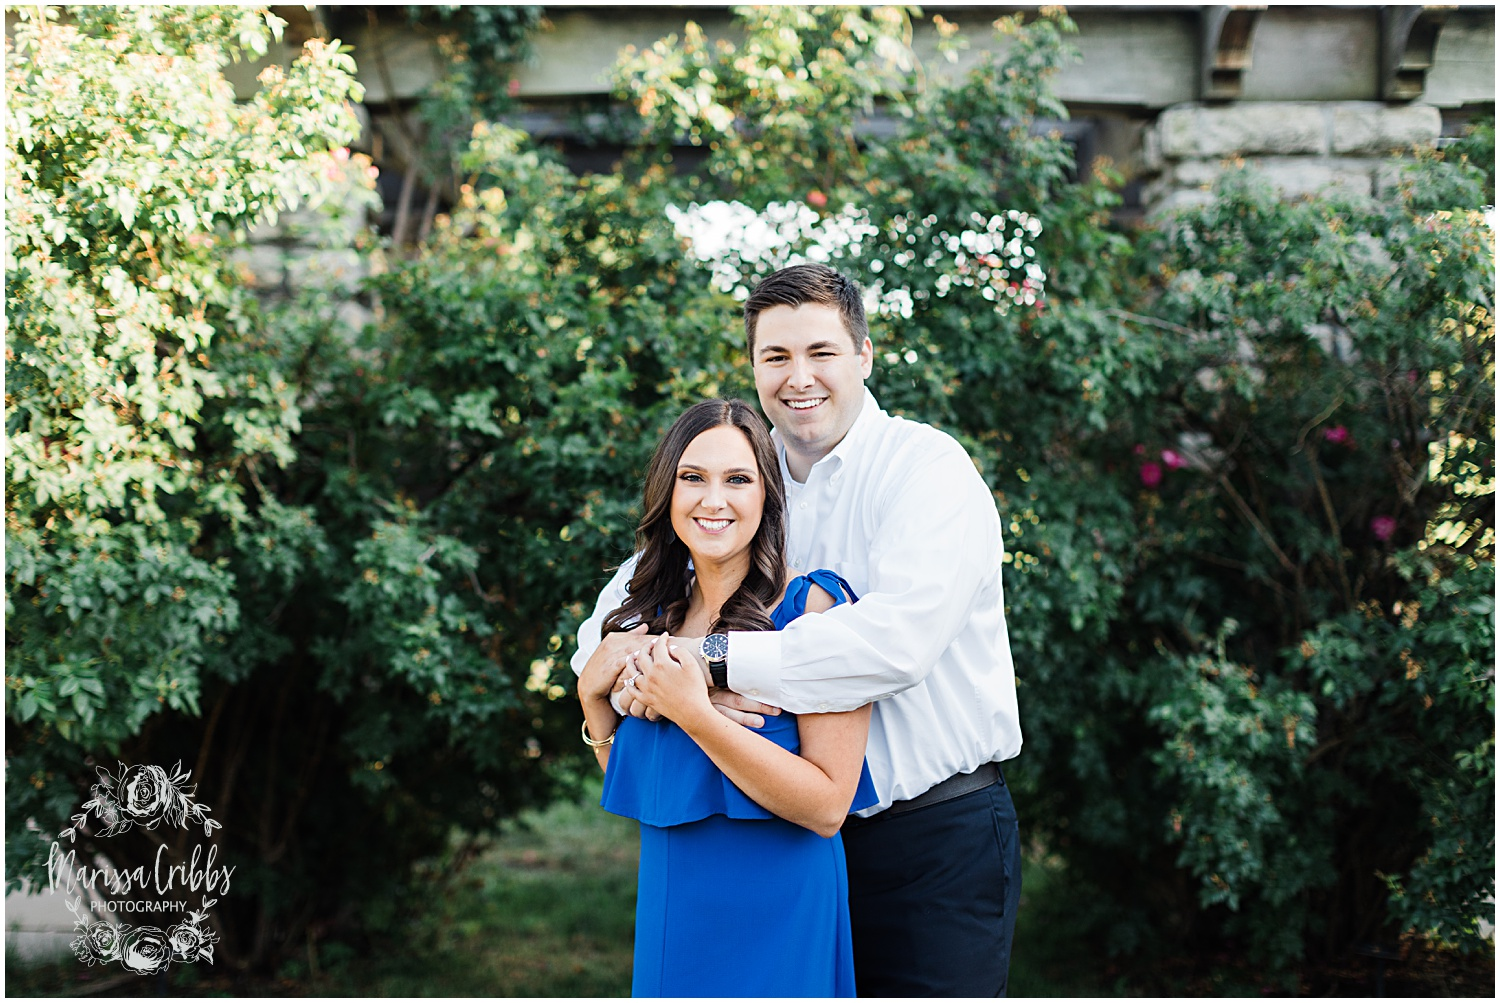 MORGAN & KEVIN ENGAGEMENT BLOG | MARISSA CRIBBS PHOTOGRAPHY_8270.jpg